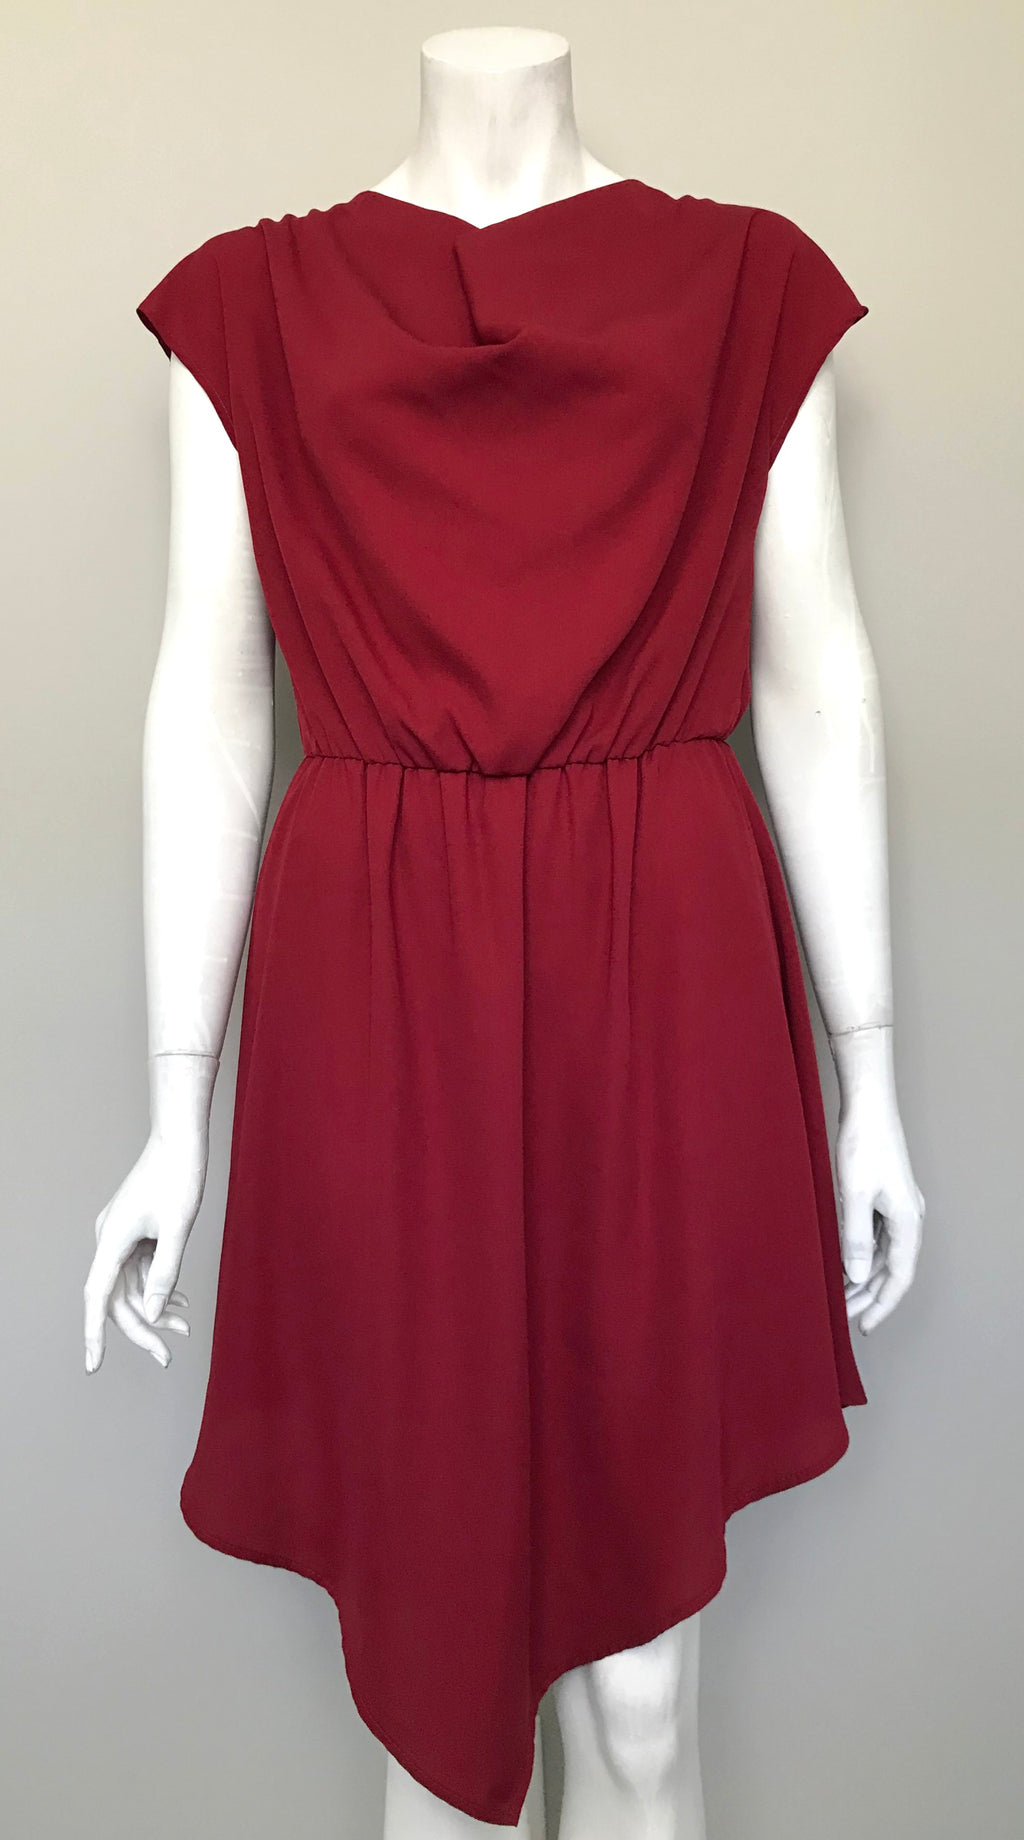 Peppermint Red Assymetrical Dress Size M